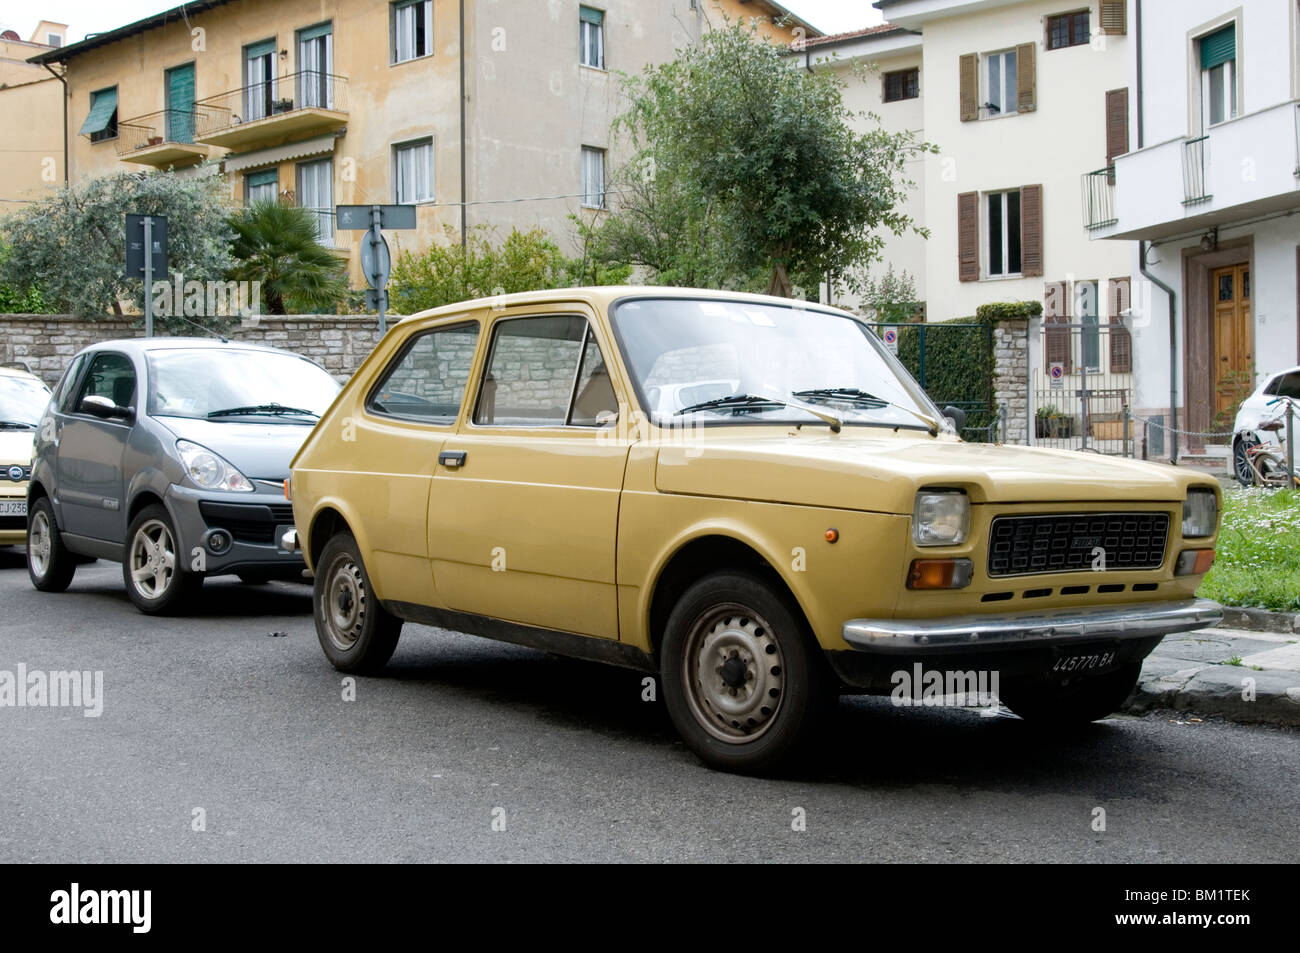 fiat 127 small city car old tiny italian cars maker makers Stock ...